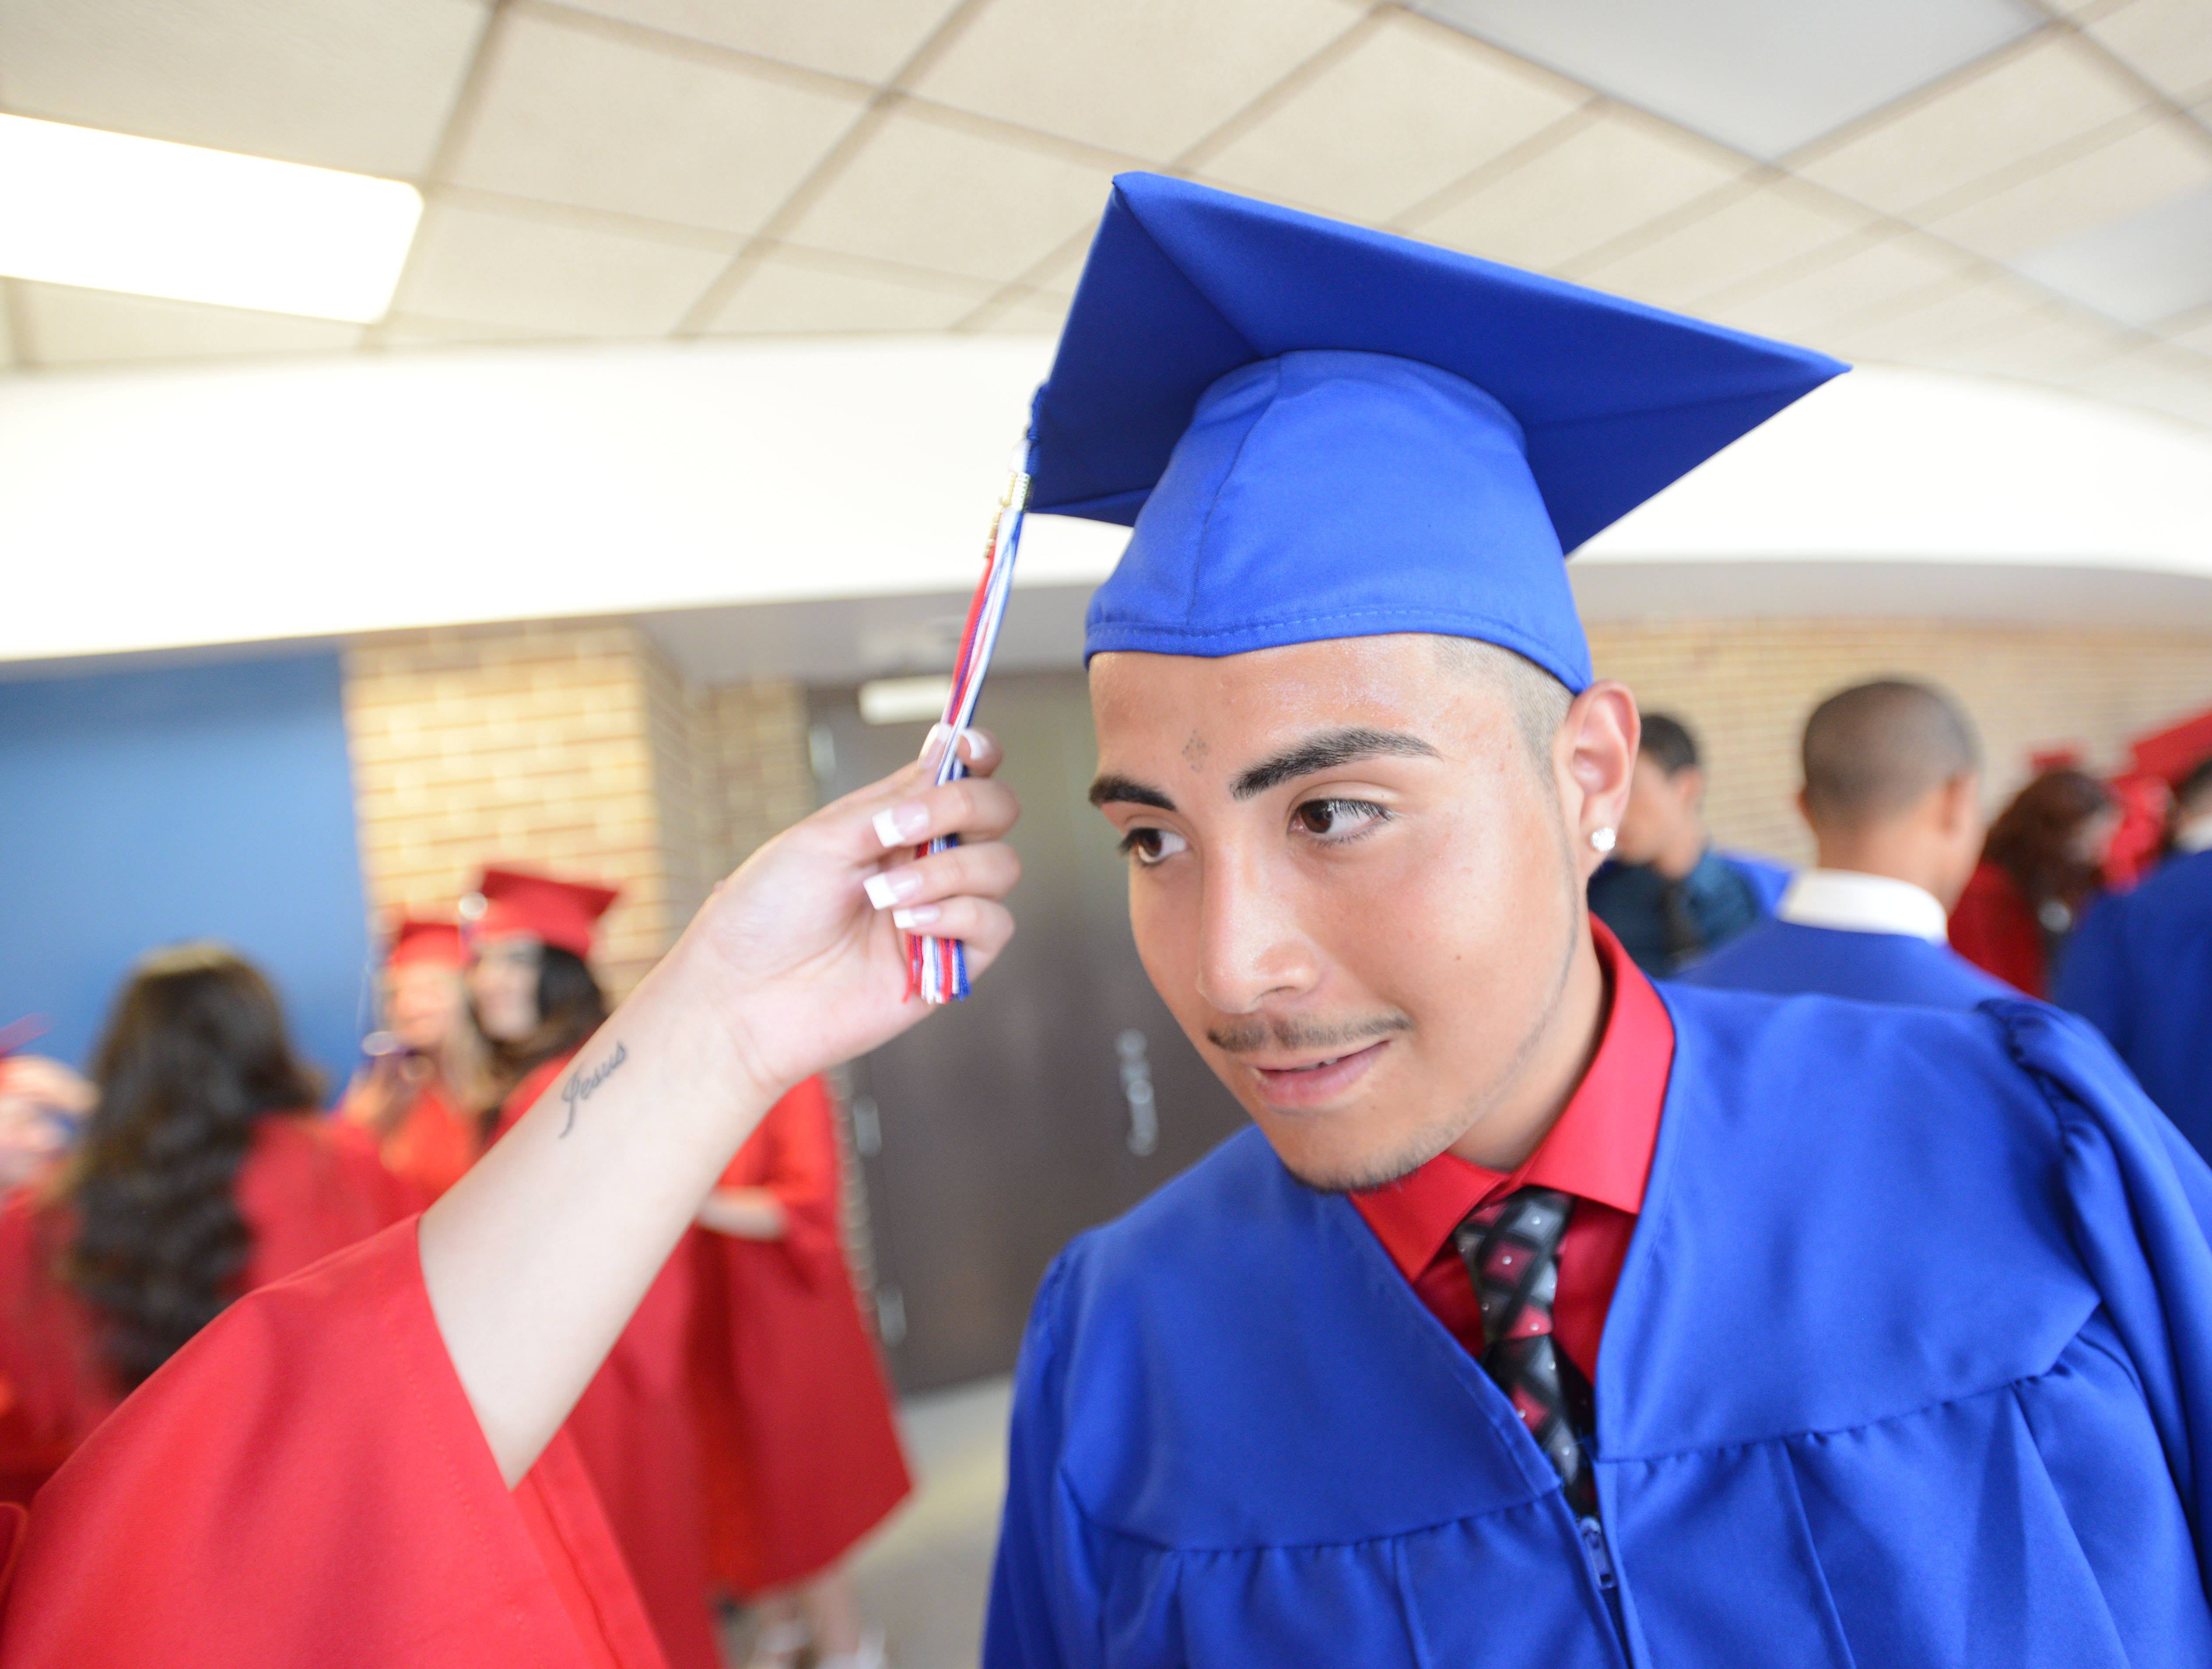 Jose Vazquez,18, of Wheaton get some hep with his cap.